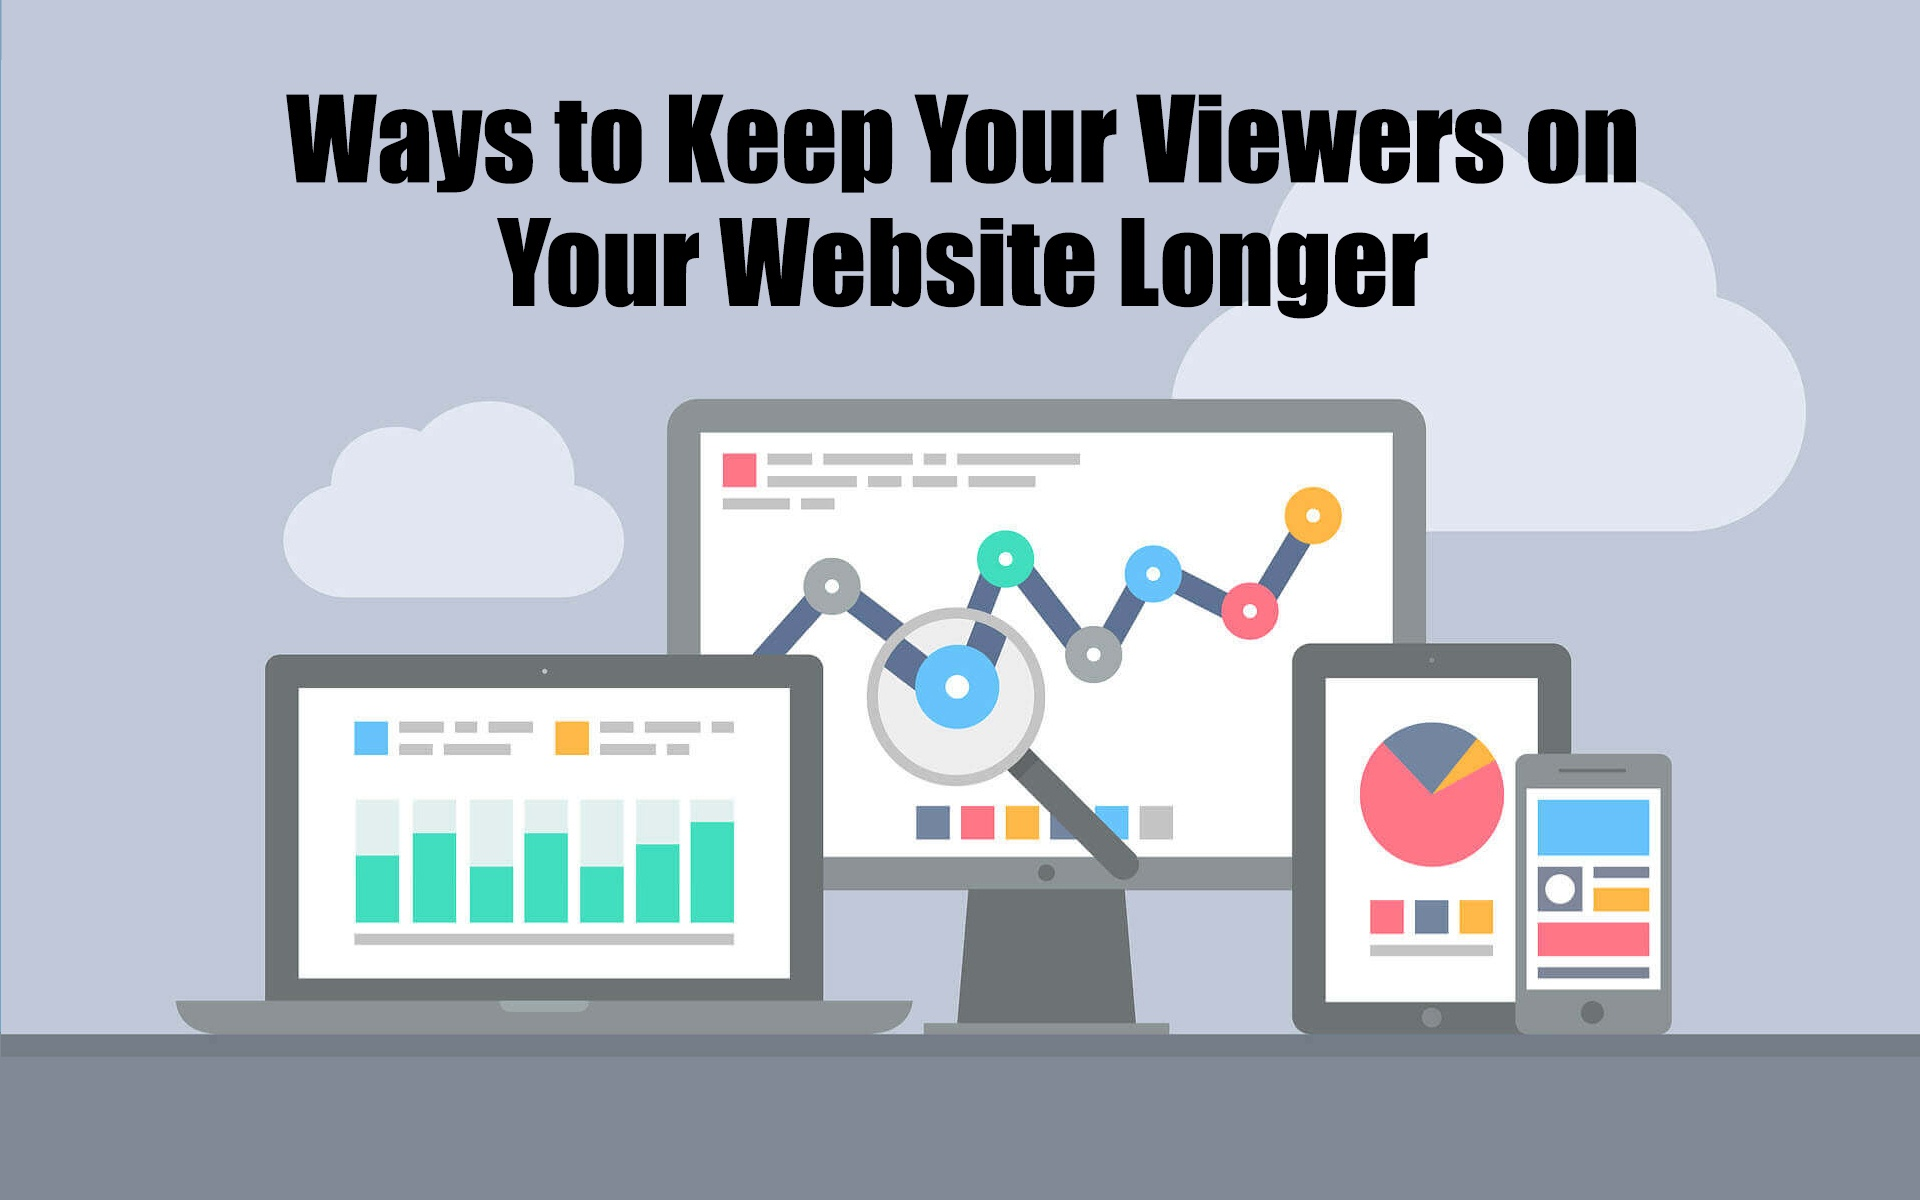 Ways to Keep Your Viewers on Your Website Longer